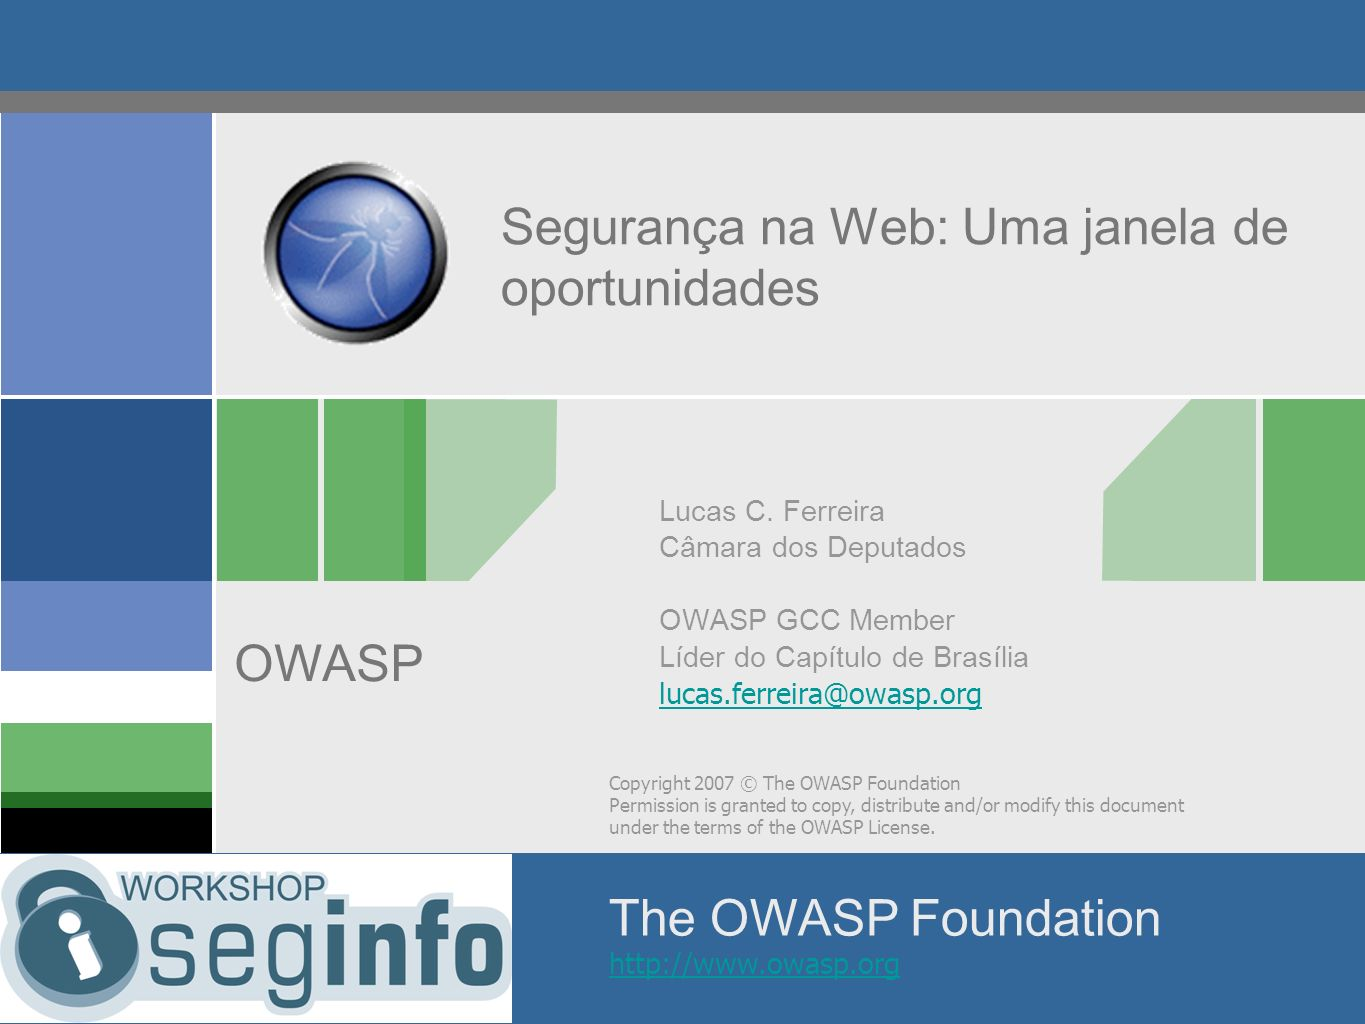 Copyright 2007 © The OWASP Foundation Permission is granted to copy, distribute and/or modify this document under the terms of the OWASP License. The